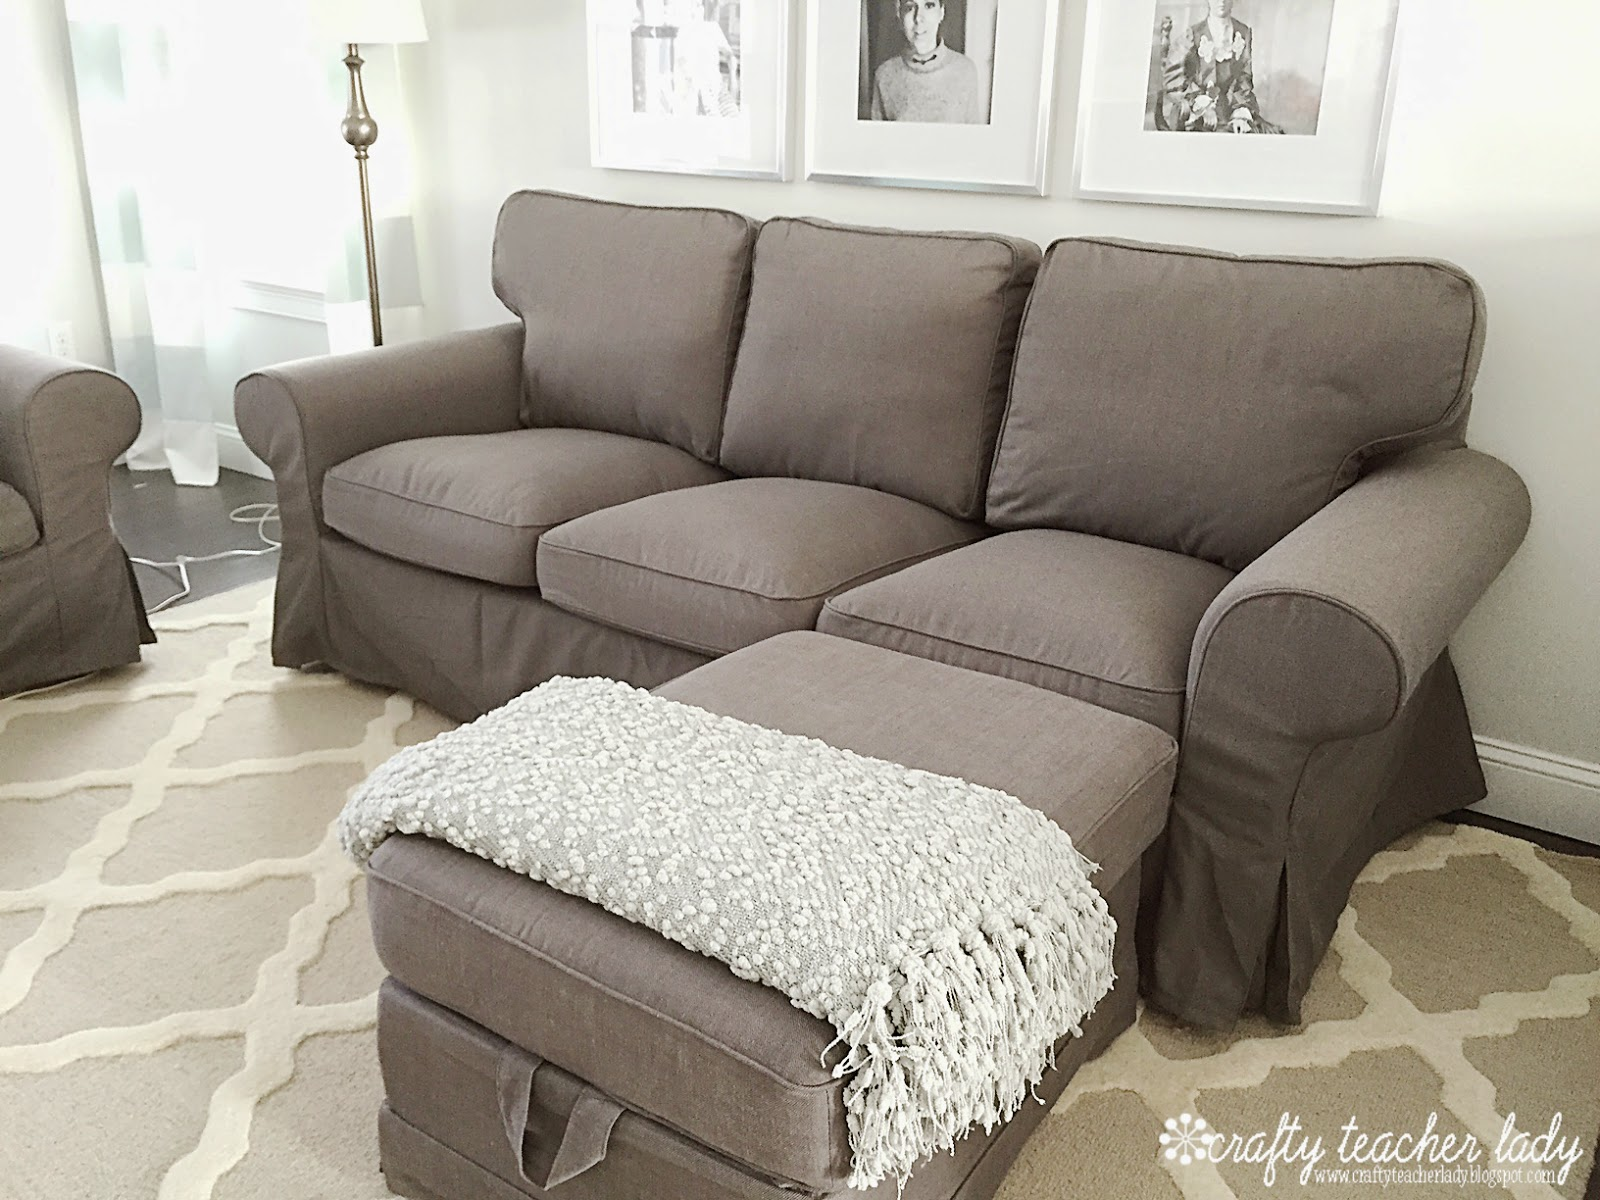 Crafty teacher lady review of the ikea ektorp sofa series for Ikea sofa set